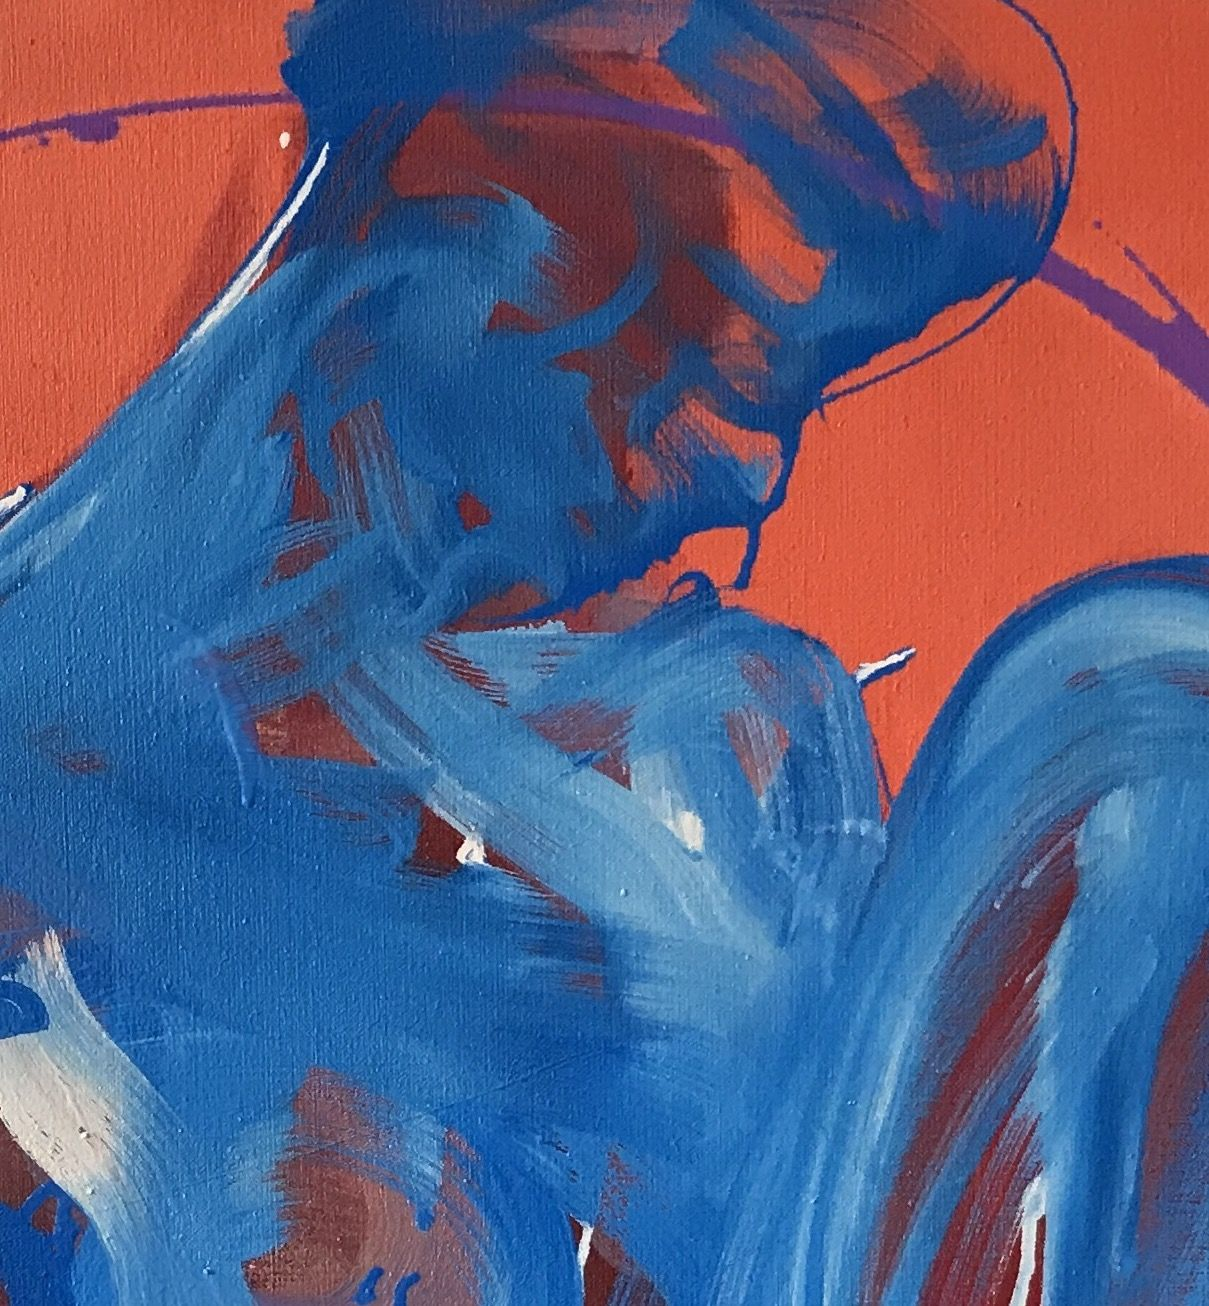 Padua,Christophe Dupety,Contemporary painting, detail 1